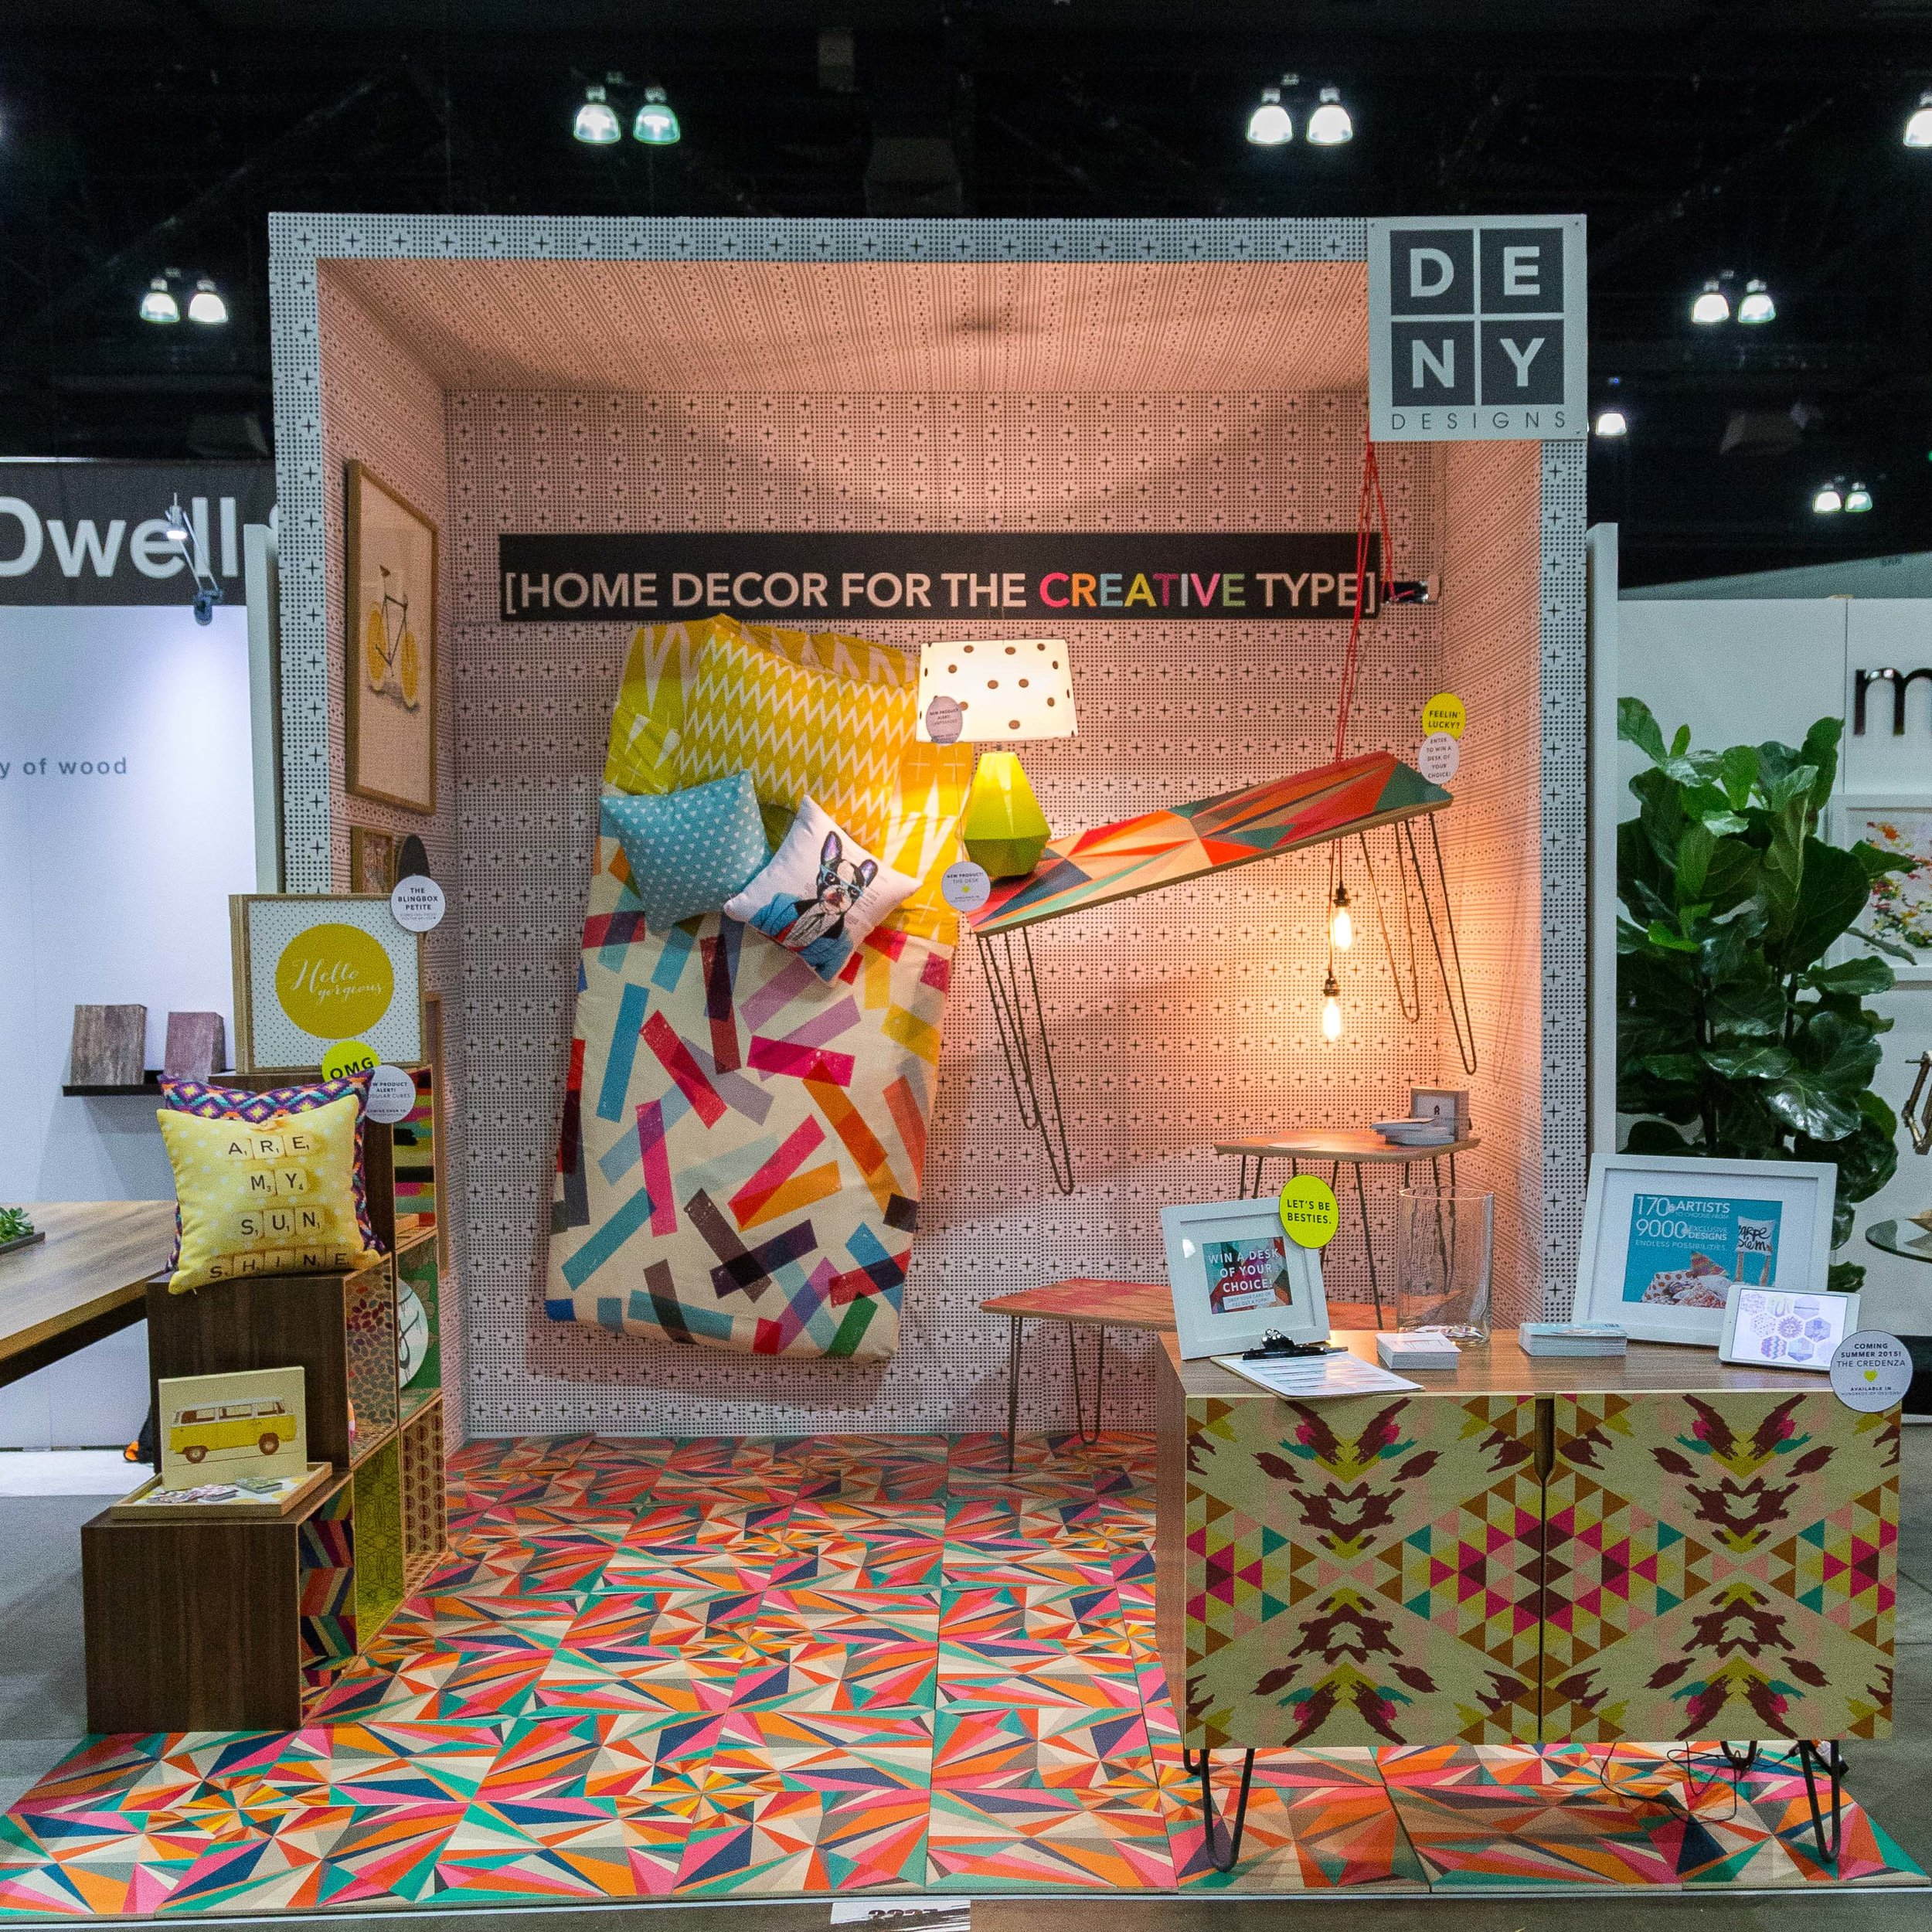 DENY Booth Design